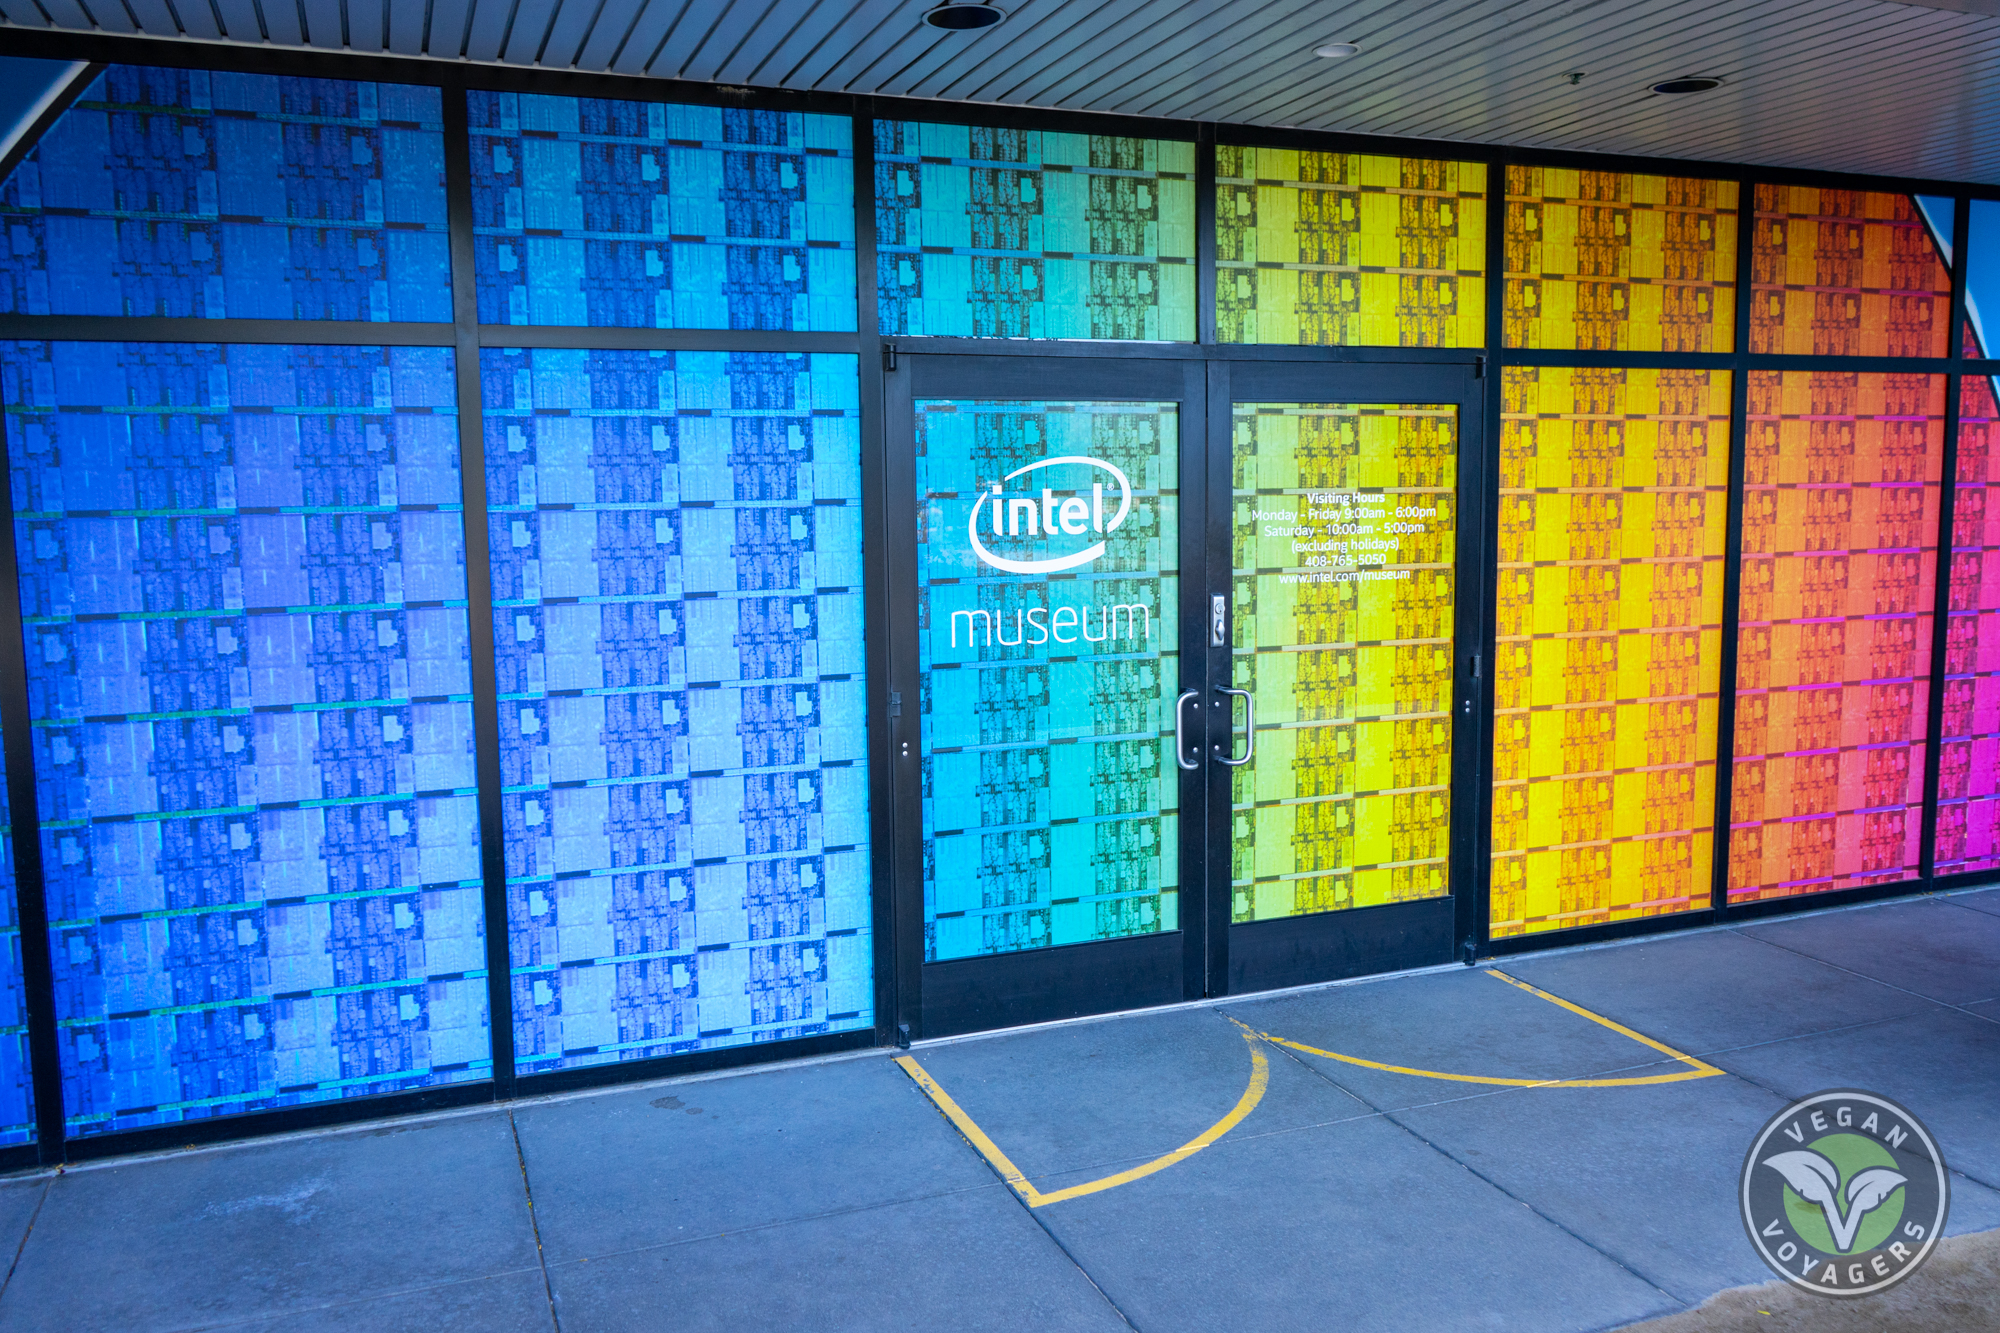 Top Things To Do in Silicon Valley | Intel Museum